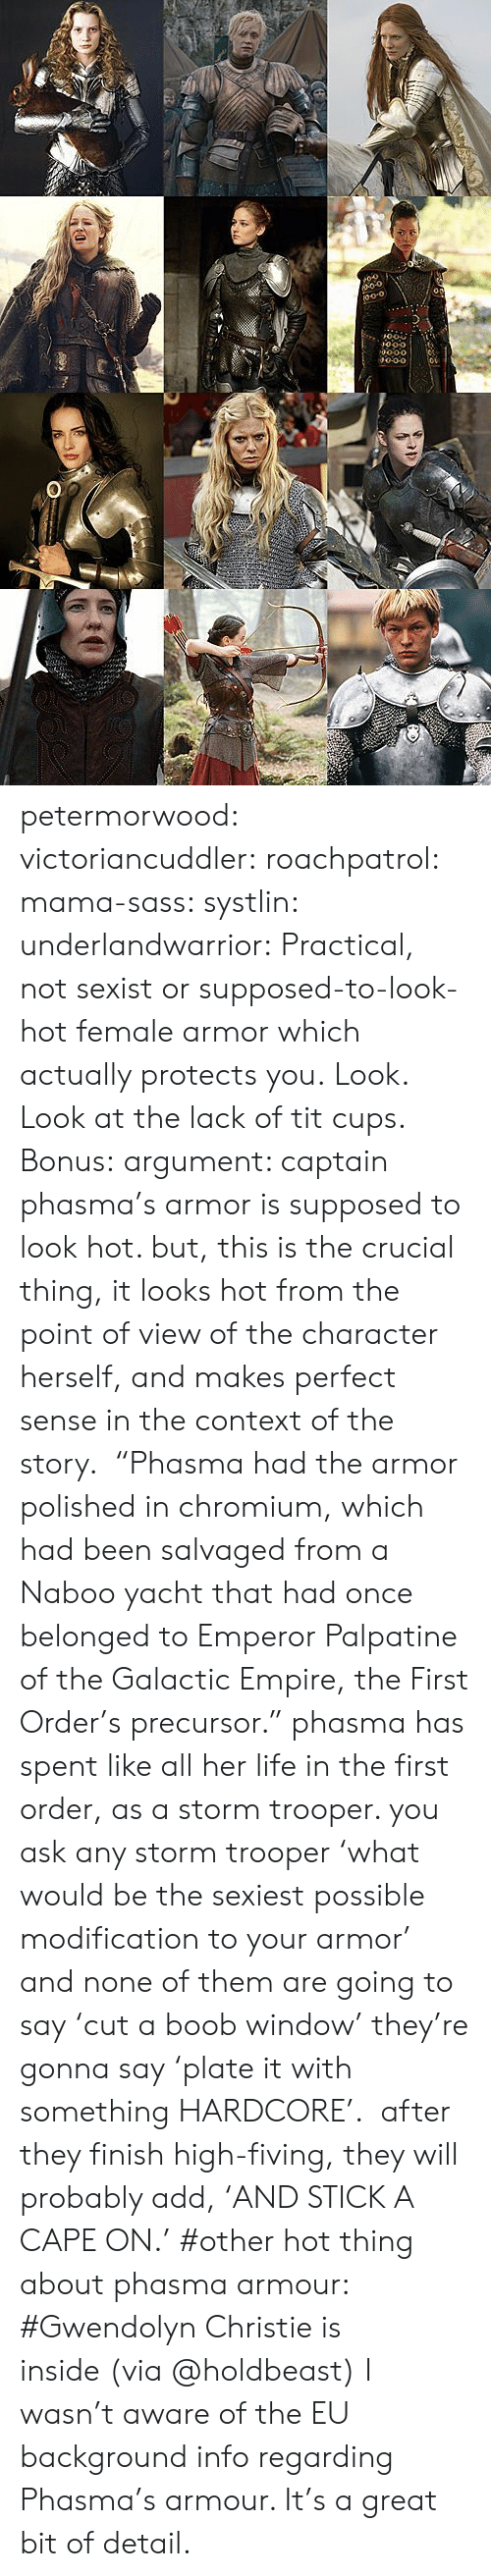 "makes-perfect-sense: 0-o  O0-o petermorwood:  victoriancuddler:  roachpatrol:  mama-sass:  systlin:  underlandwarrior:  Practical, not sexist or supposed-to-look-hot female armor which actually protects you.  Look.  Look at the lack of tit cups.   Bonus:  argument: captain phasma's armor is supposed to look hot. but, this is the crucial thing, it looks hot from the point of view of the character herself, and makes perfect sense in the context of the story.  ""Phasma had the armor polished in chromium, which had been salvaged from a Naboo yacht that had once belonged to Emperor Palpatine of the Galactic Empire, the First Order's precursor."" phasma has spent like all her life in the first order, as a storm trooper. you ask any storm trooper 'what would be the sexiest possible modification to your armor' and none of them are going to say 'cut a boob window' they're gonna say 'plate it with something HARDCORE'.  after they finish high-fiving, they will probably add, 'AND STICK A CAPE ON.'    #other hot thing about phasma armour: #Gwendolyn Christie is inside (via @holdbeast)  I wasn't aware of the EU background info regarding Phasma's armour. It's a great bit of detail."